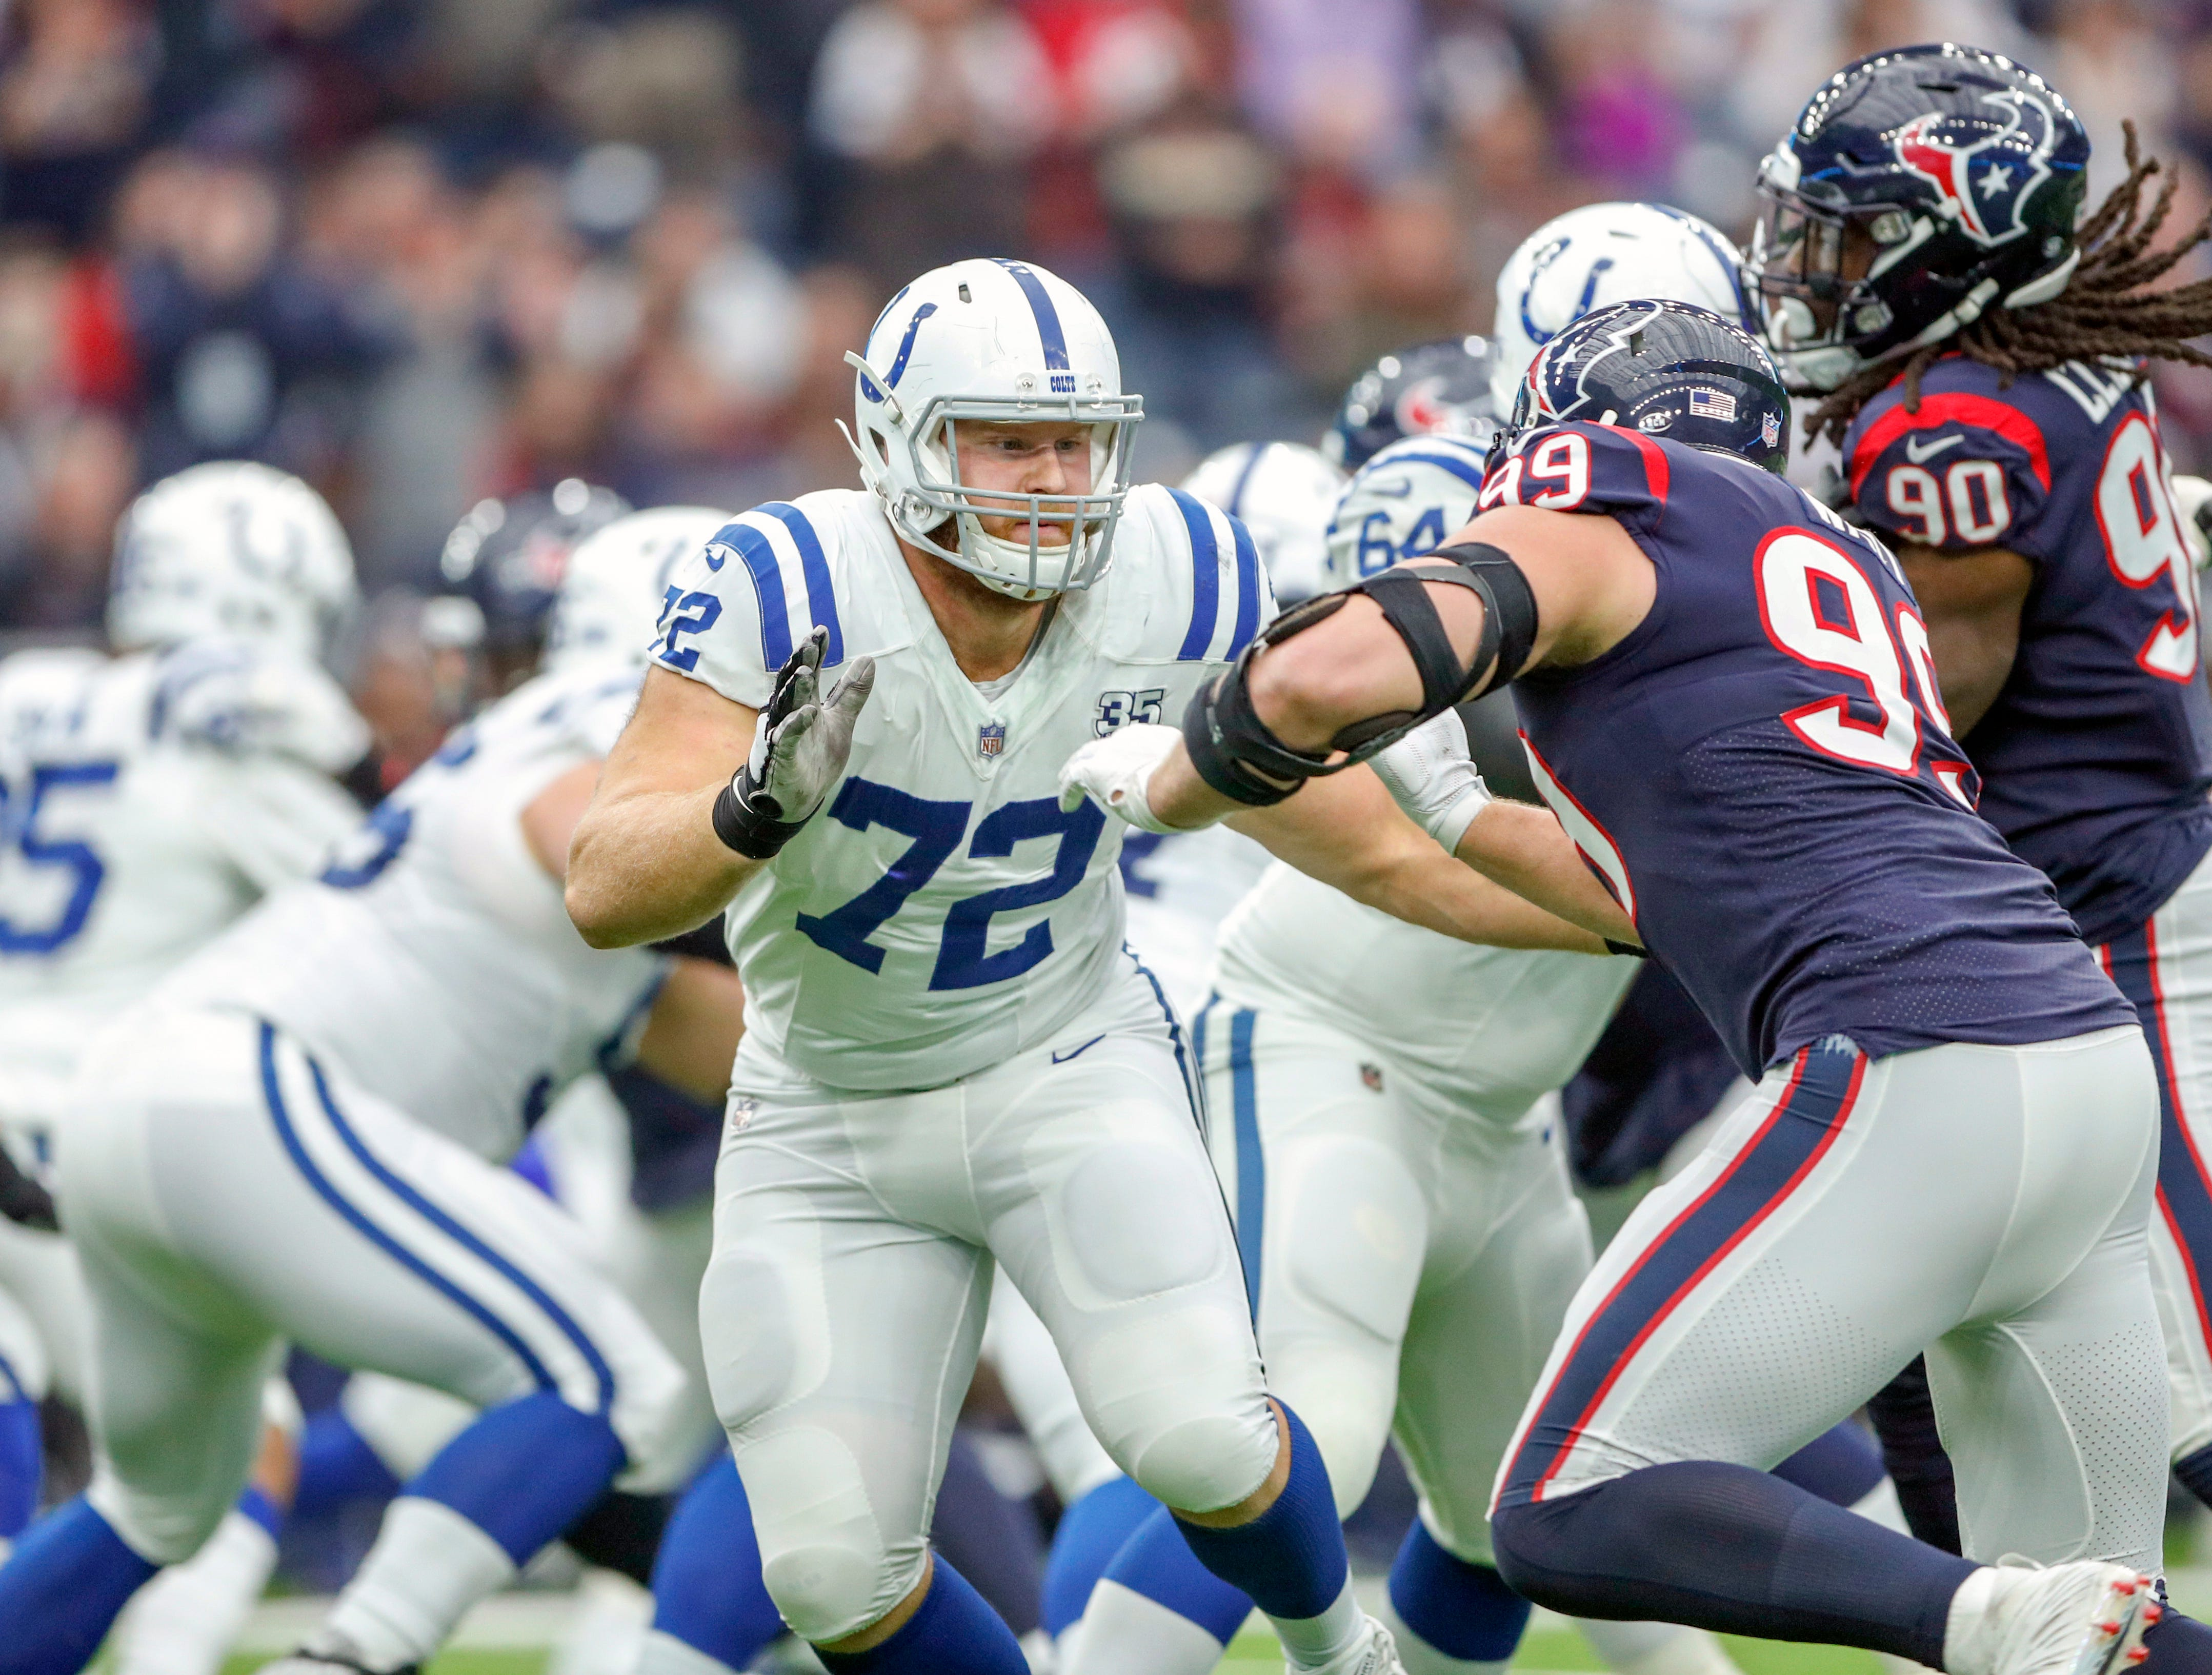 Indianapolis Colts offensive tackle Braden Smith (72) blocks against Houston Texans defensive end J.J. Watt (99) at NRG Stadium in Houston on Sunday, Dec. 9, 2018.